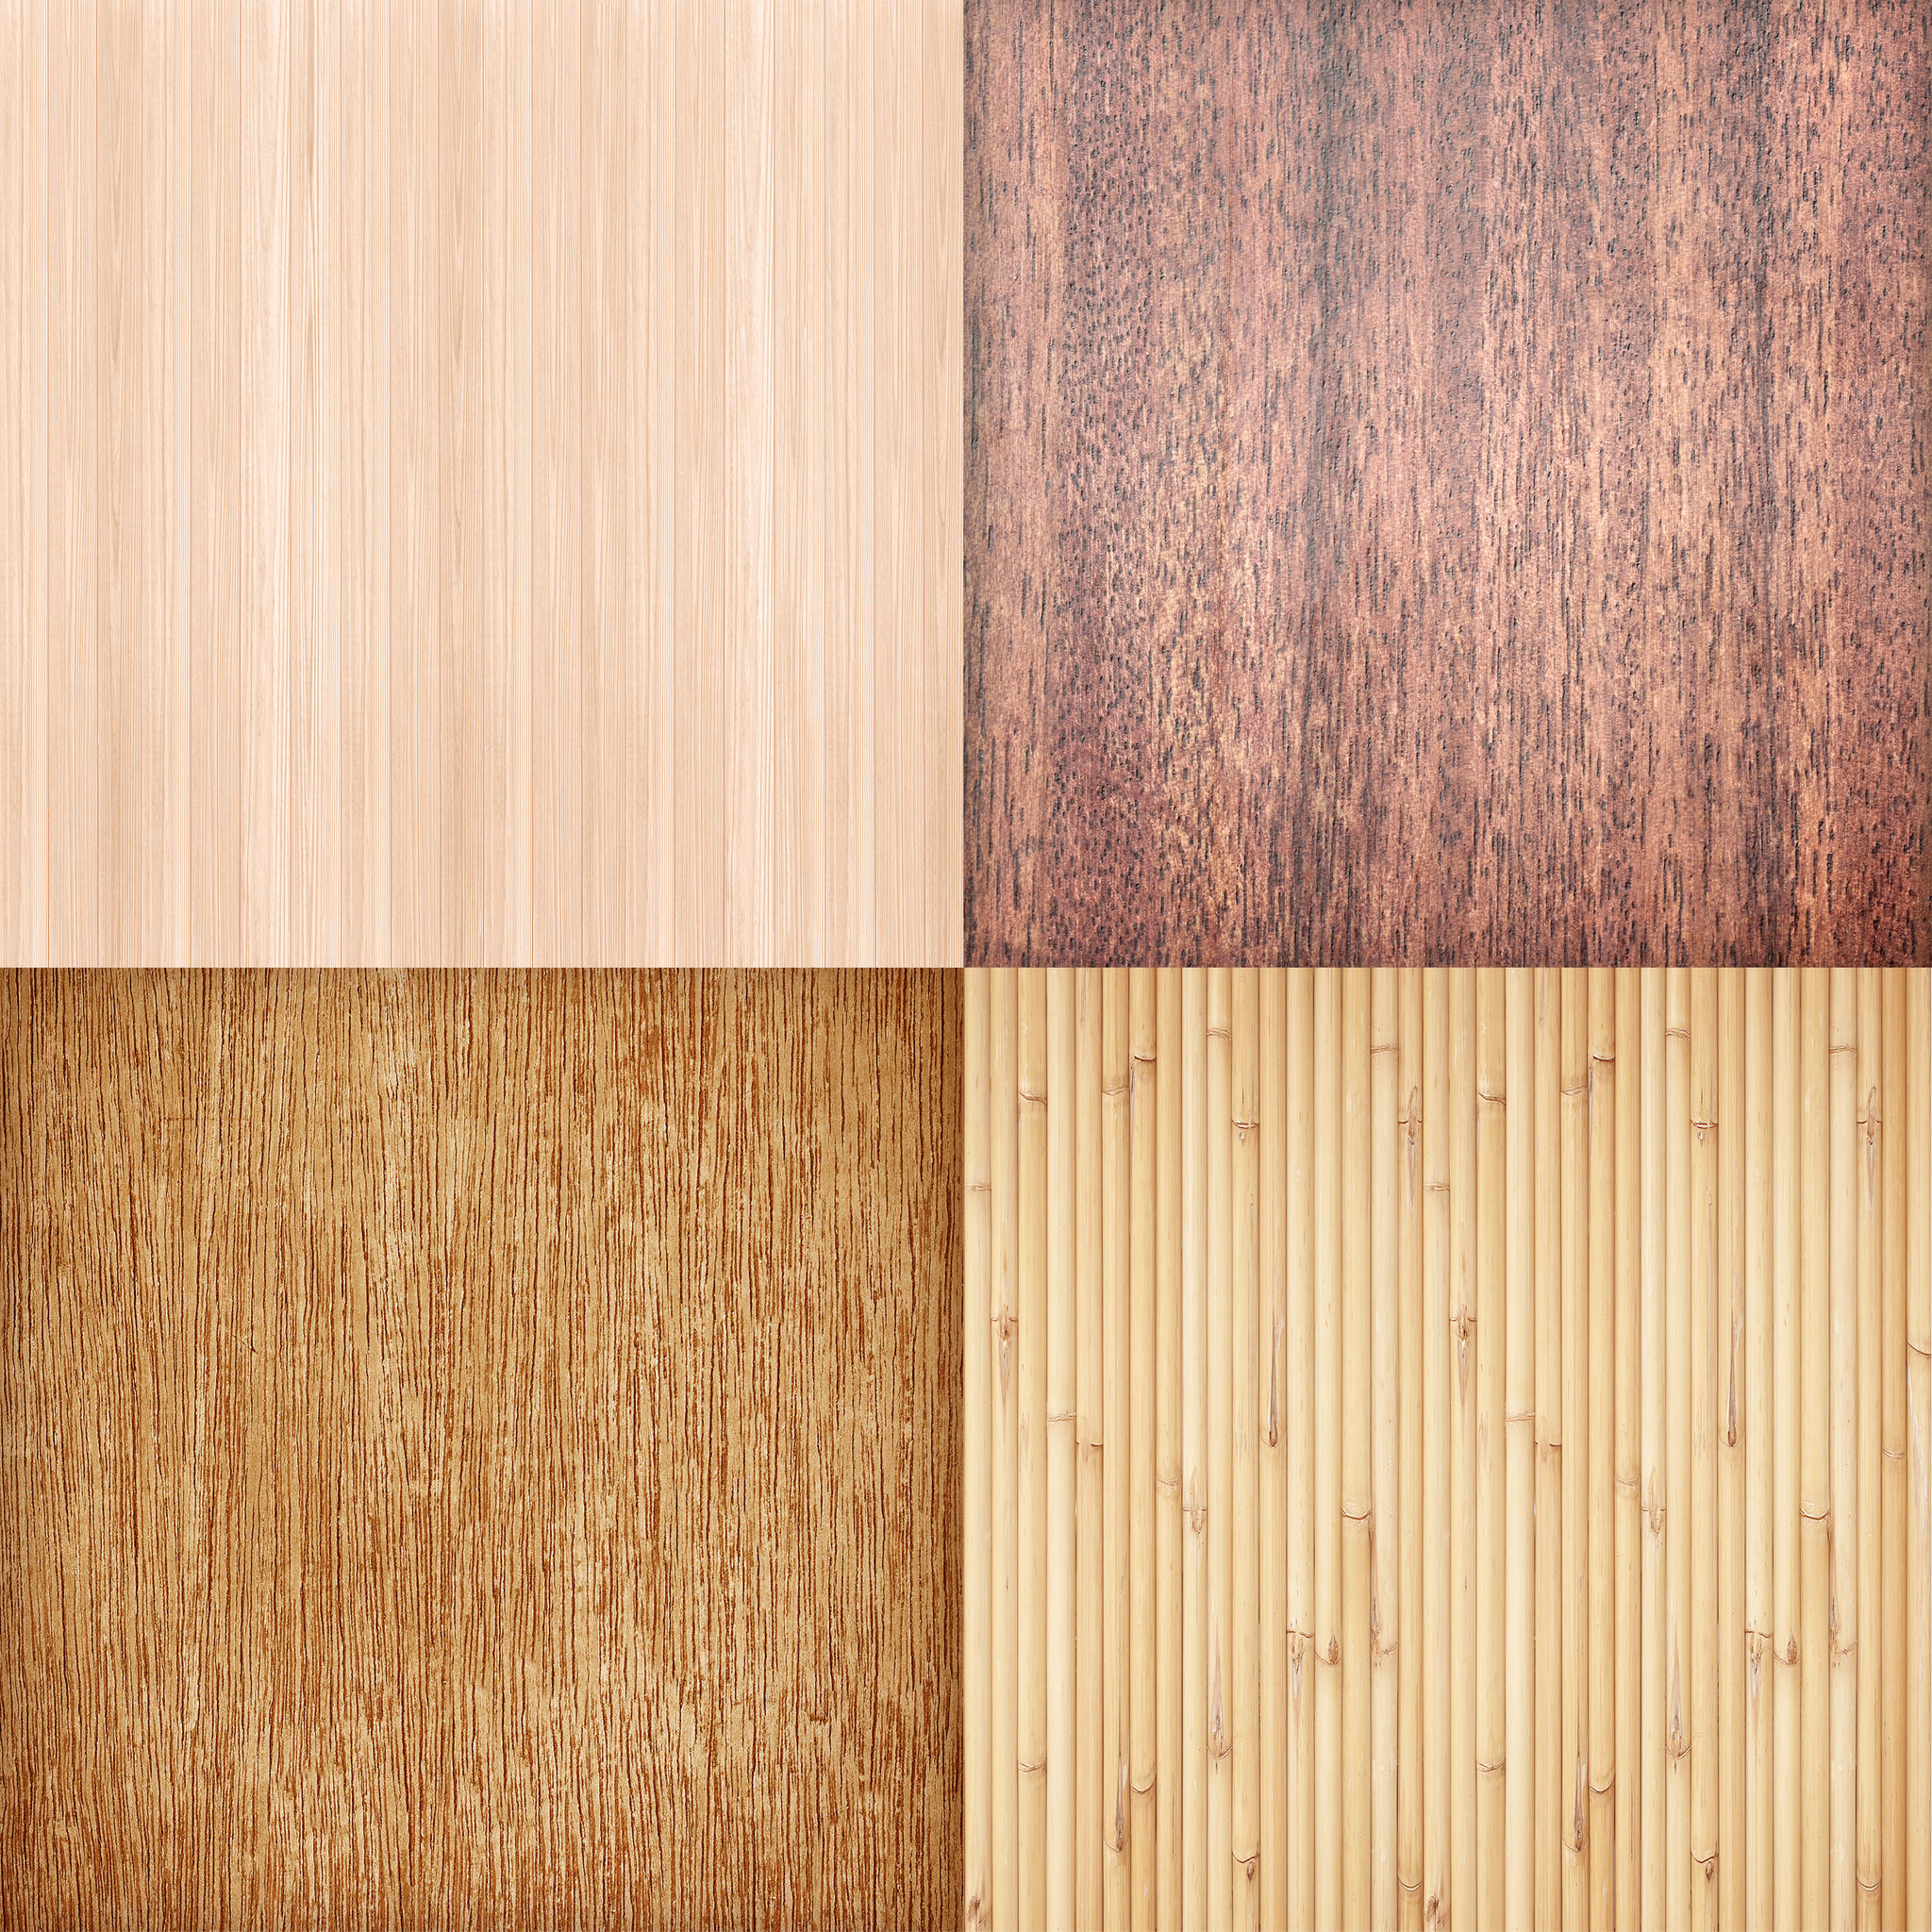 Types of Bamboo Floors WoodFloorDoctor